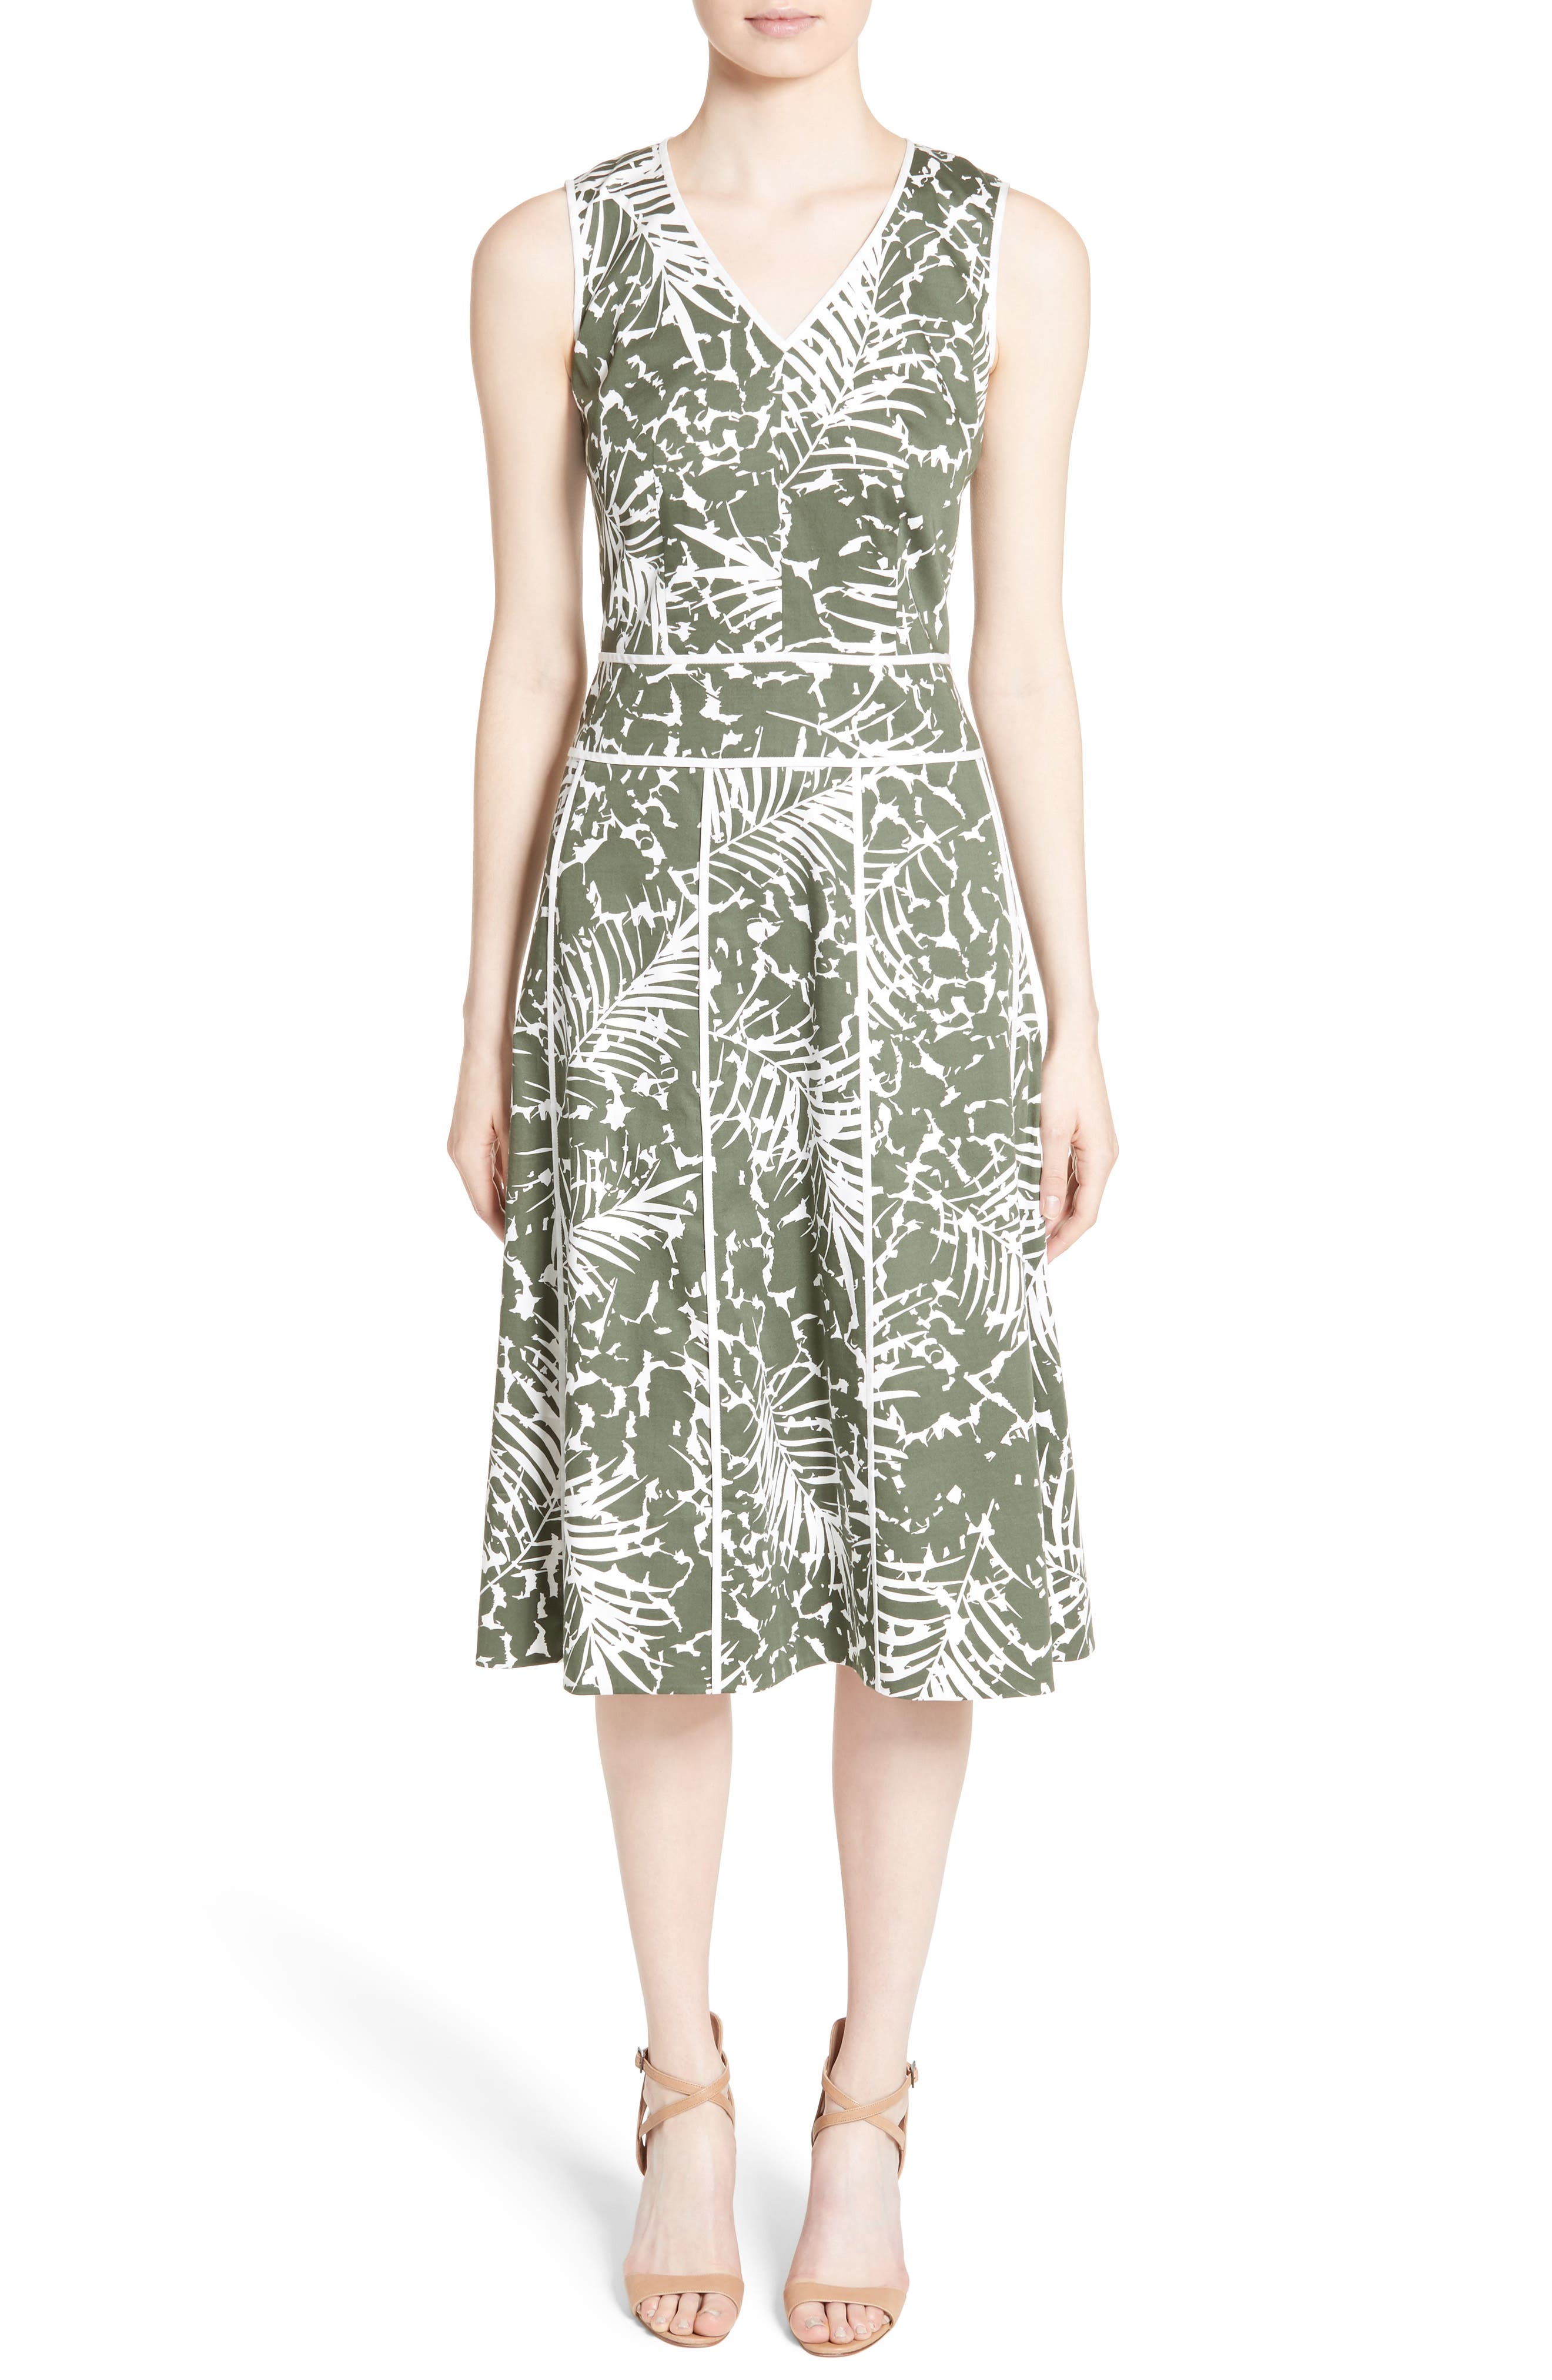 LAFAYETTE 148 NEW YORK Emlia Print Dress